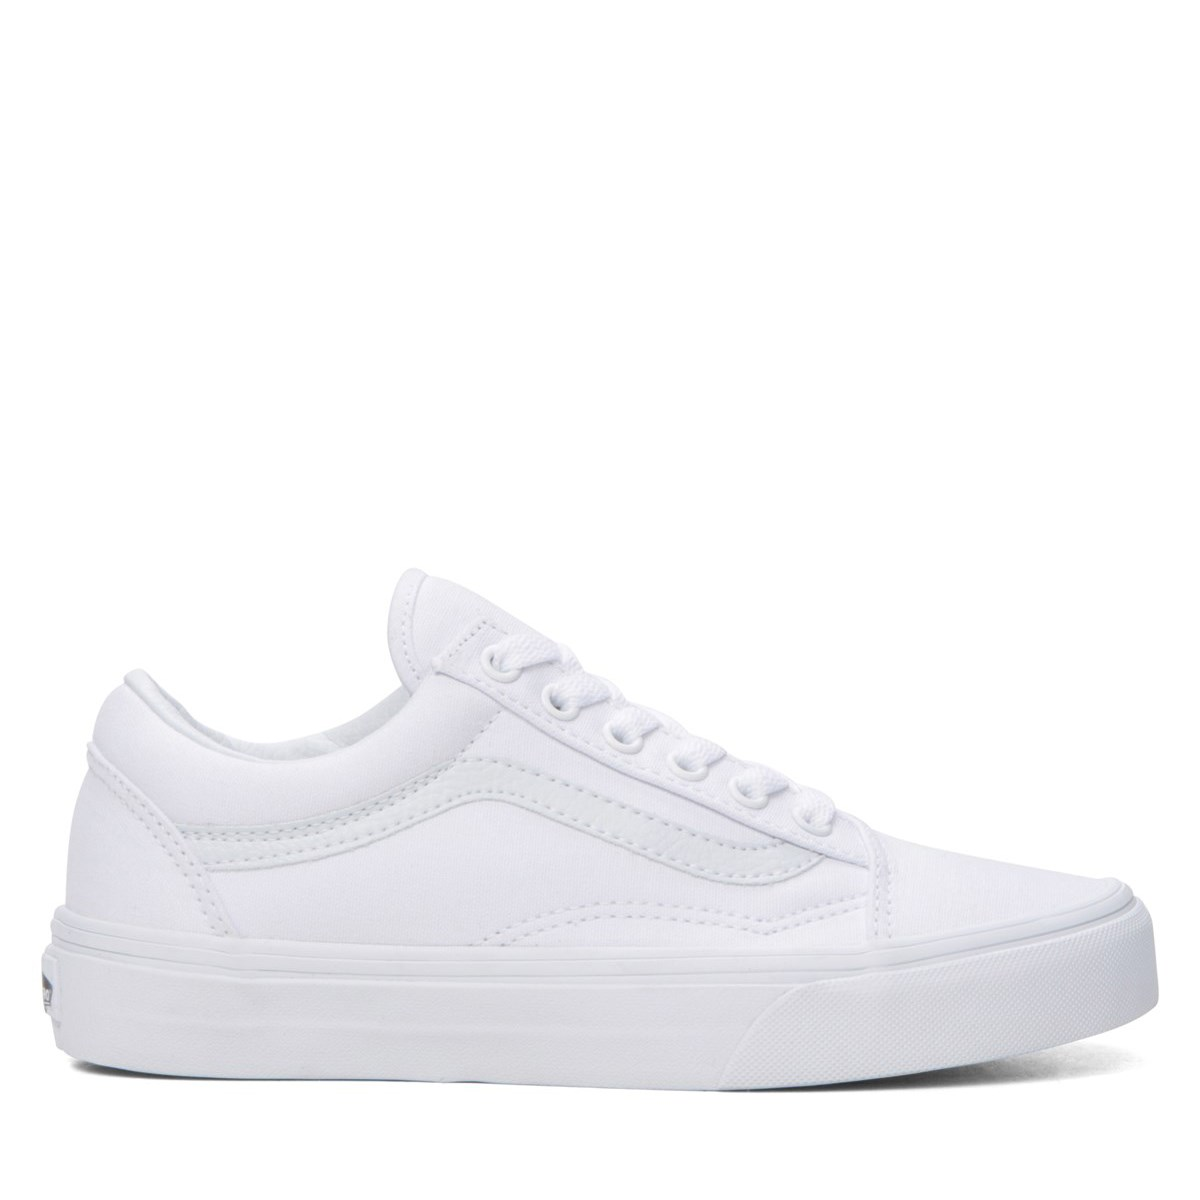 Old Skool Sneakers in White